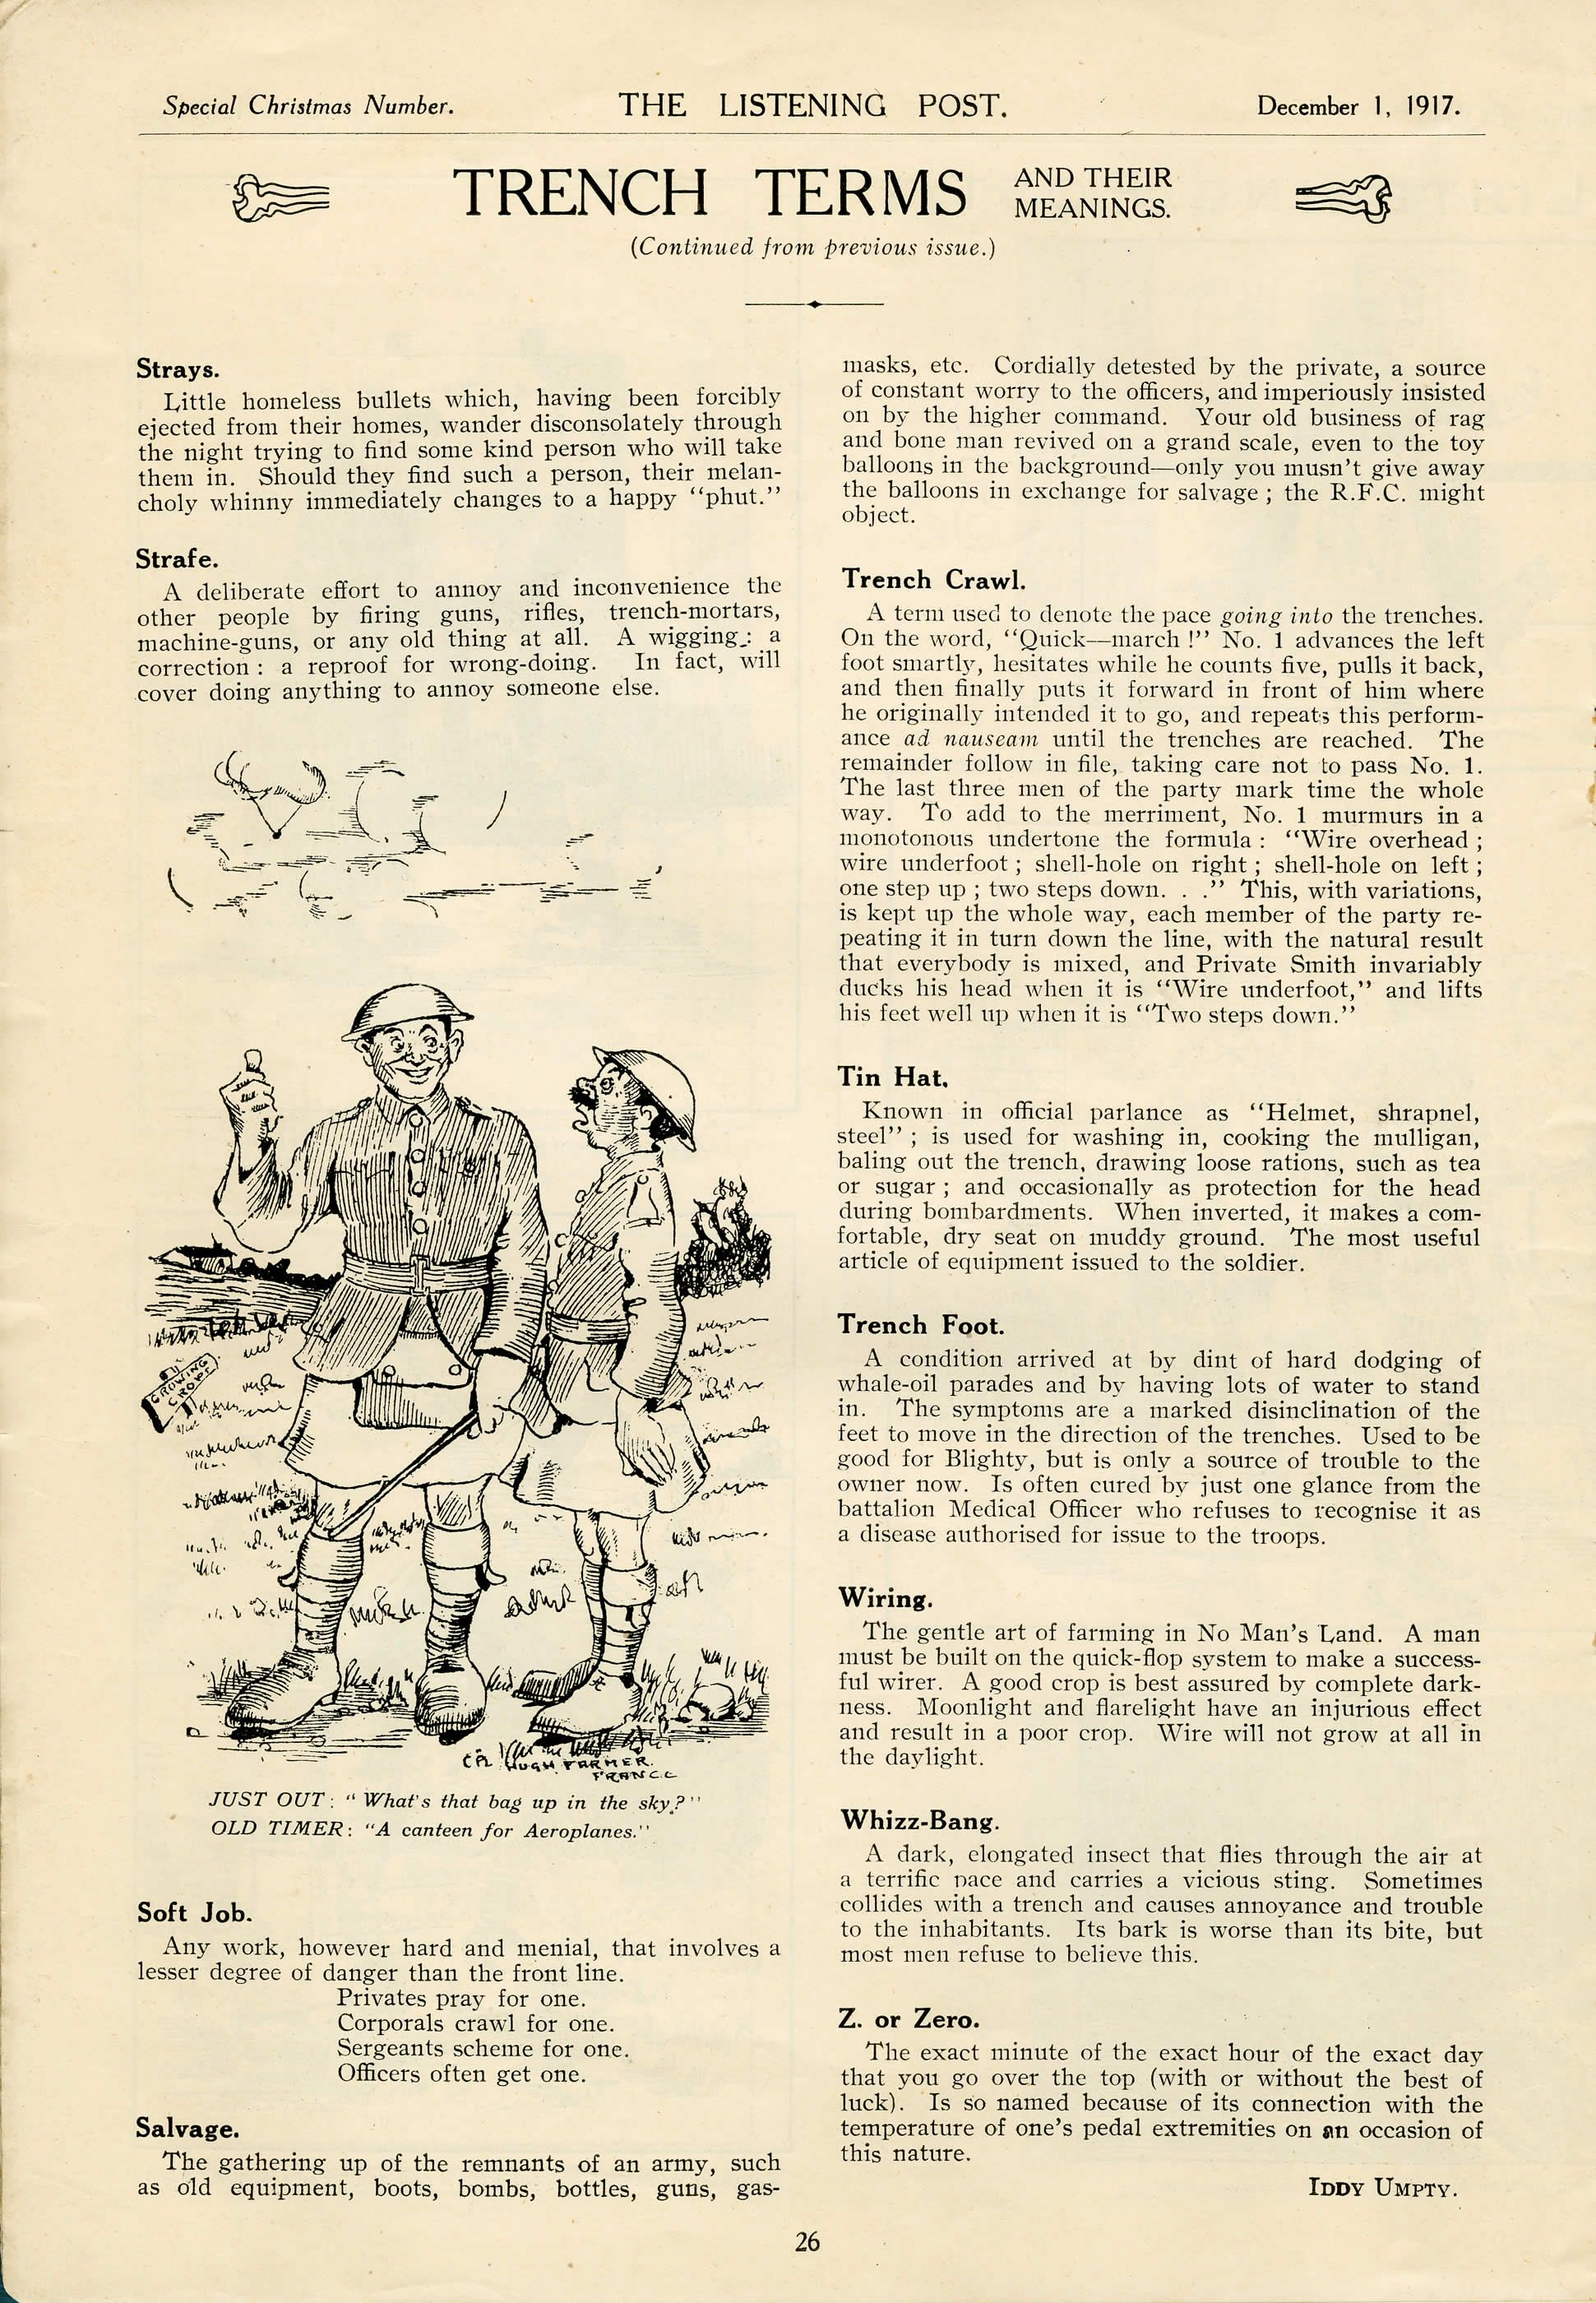 Military Documents - Trench Slang | Canada and the First World War ...